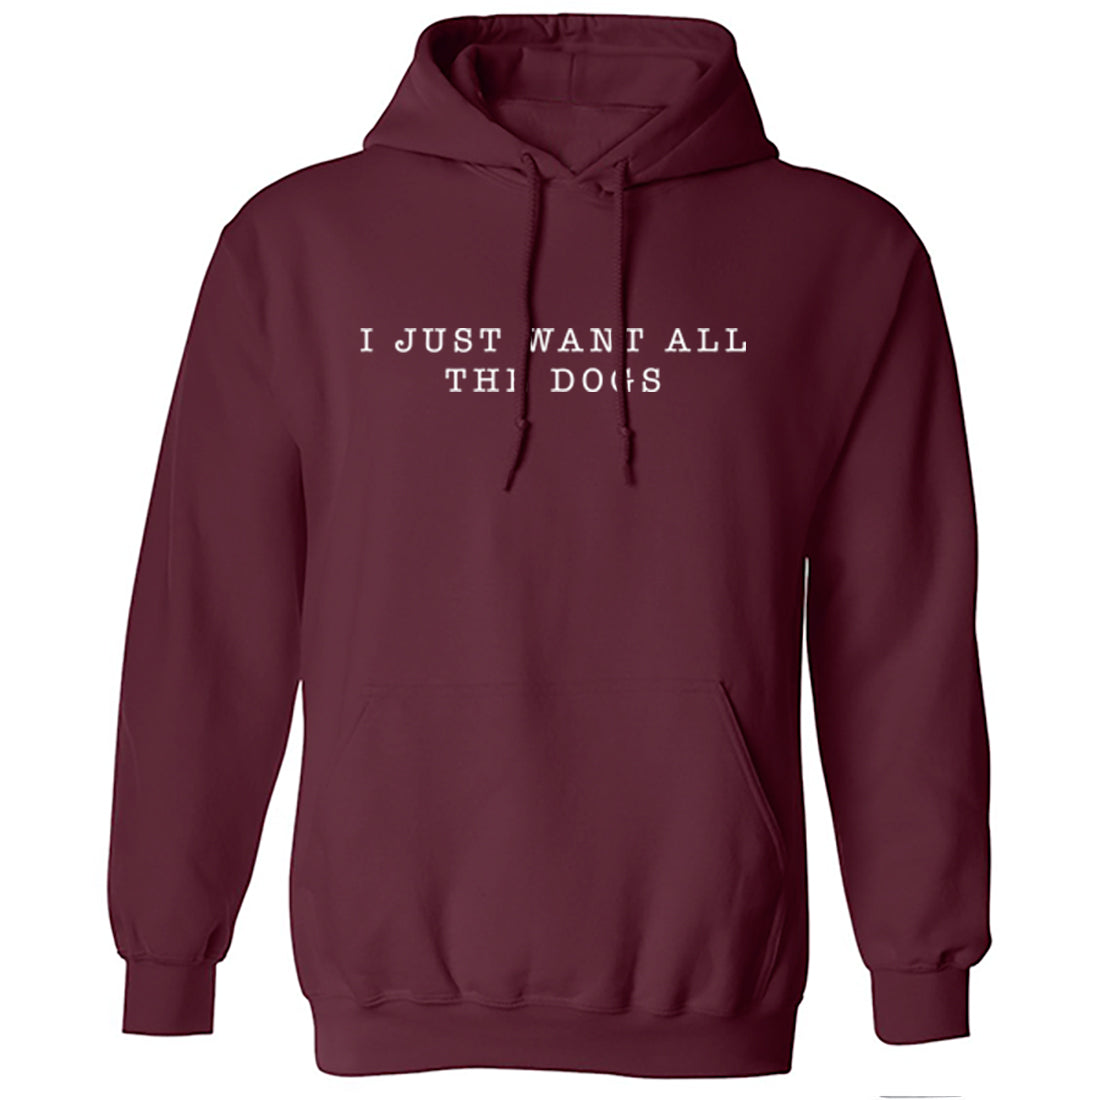 I Just Want All Of The Dogs Unisex Hoodie K2031 - Illustrated Identity Ltd.